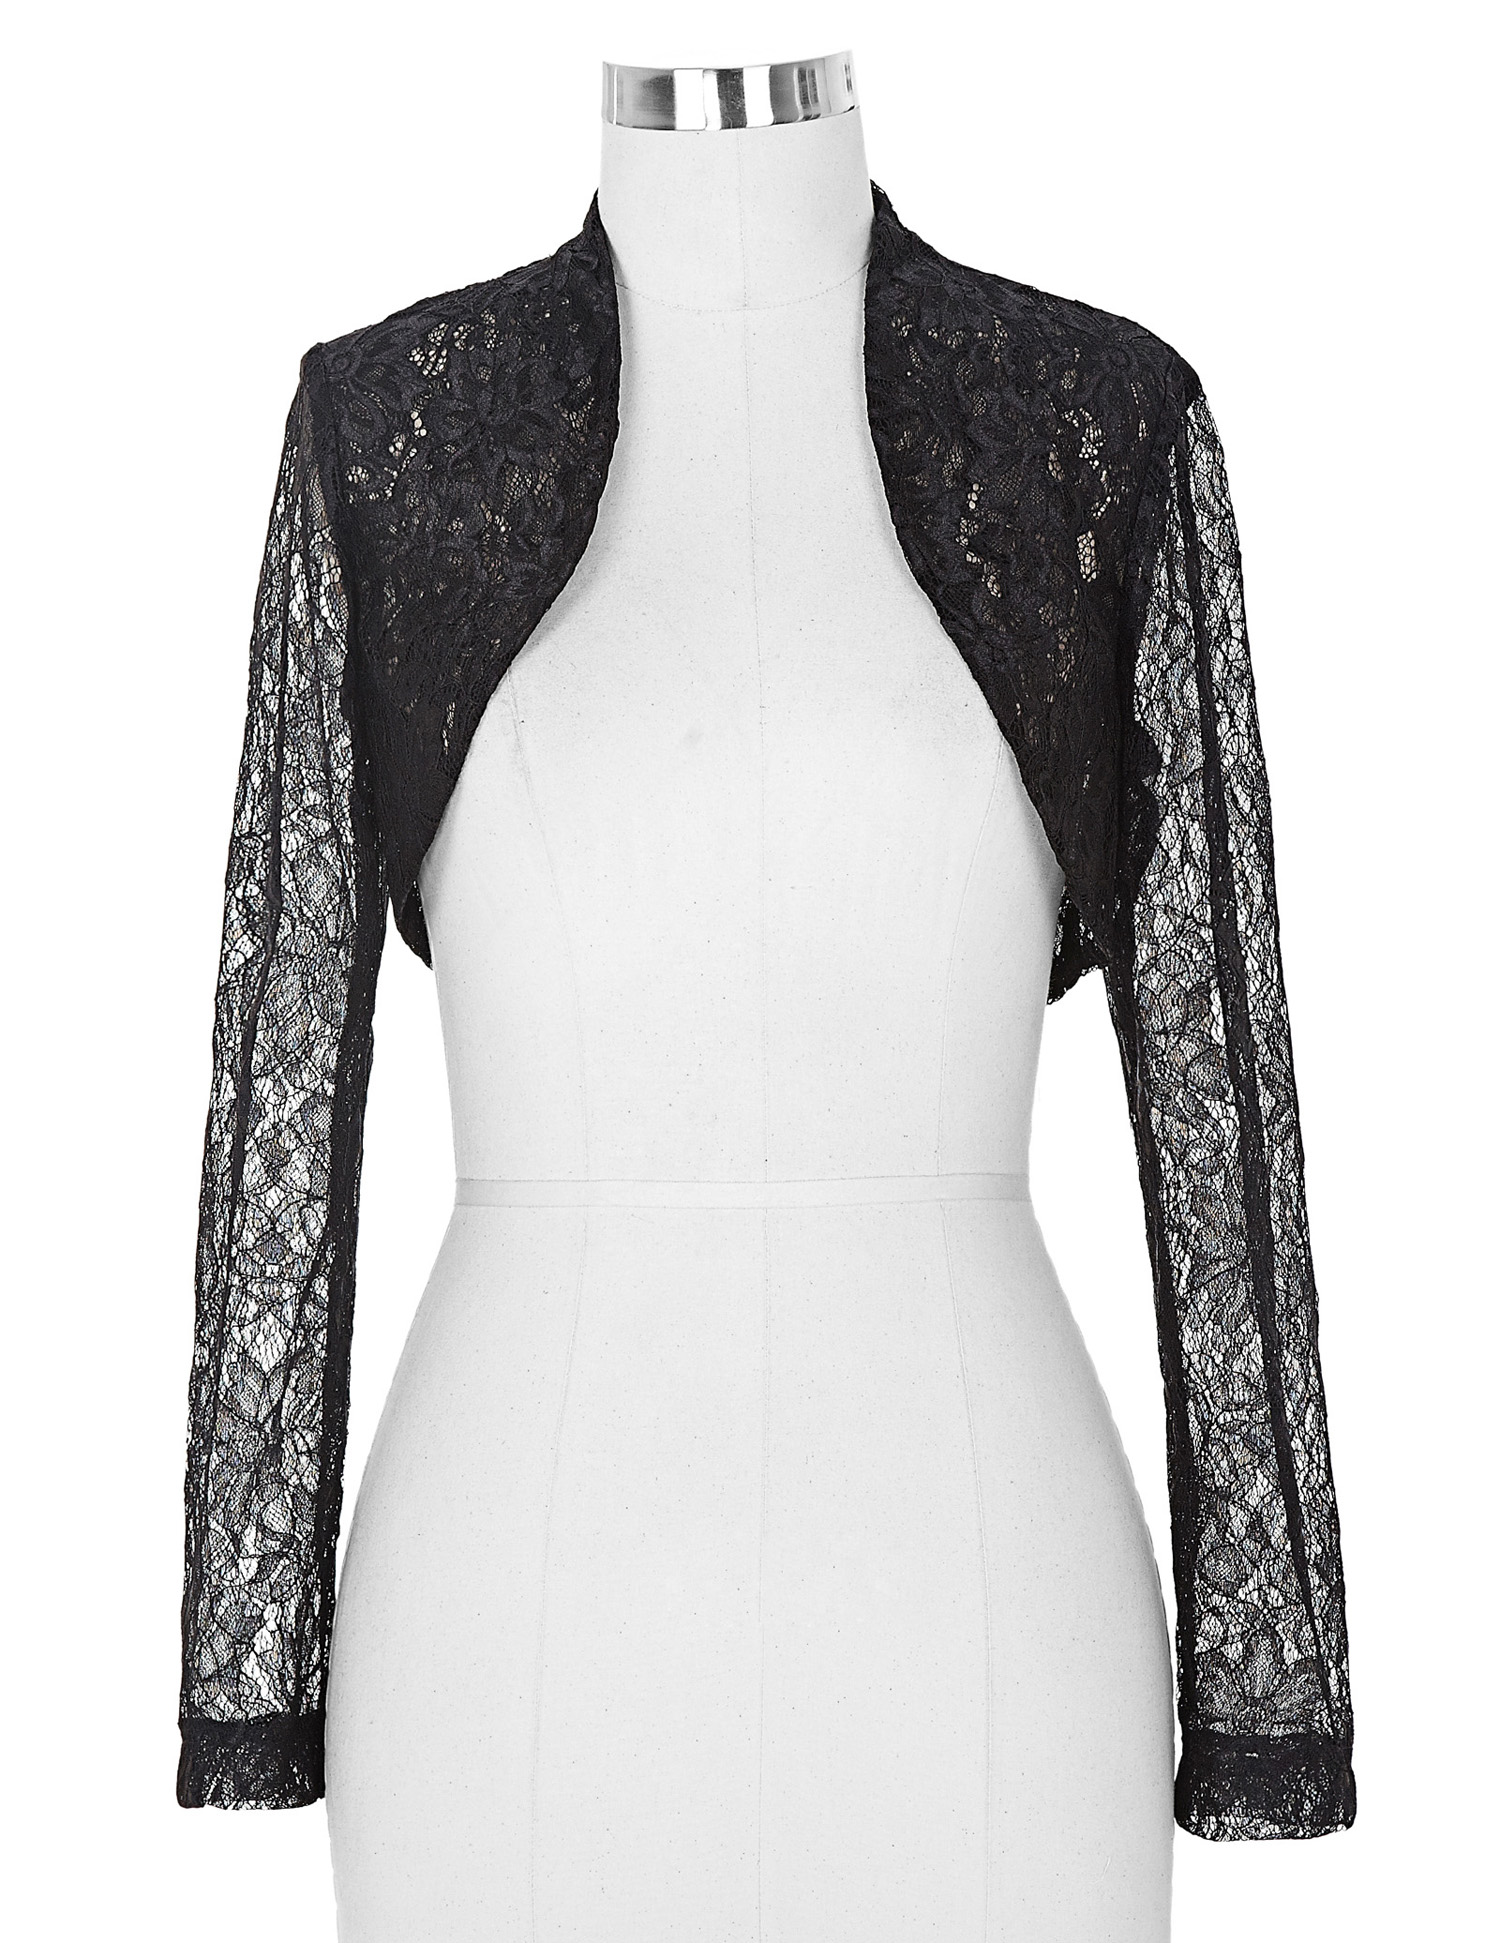 Sexy Black White Lace Bolero Elegant Ladies Shrug Long Sleeve Plus Size Wedding Evening Prom Cropped Lace Bolero Shrugs